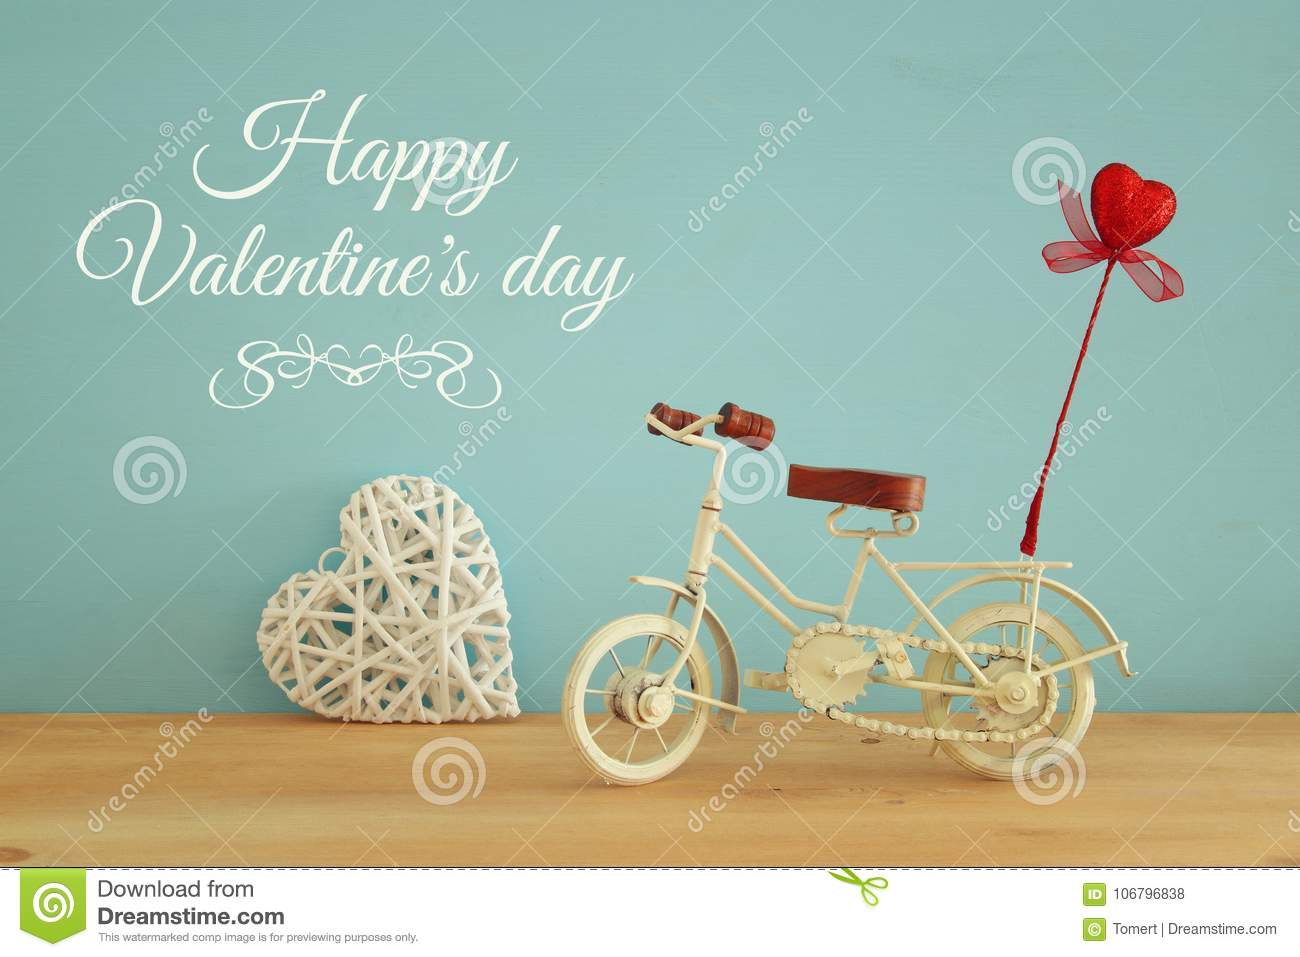 Valentine& x27;s day romantic background with white vintage bicycle toy and glitter red heart on it over wooden table.